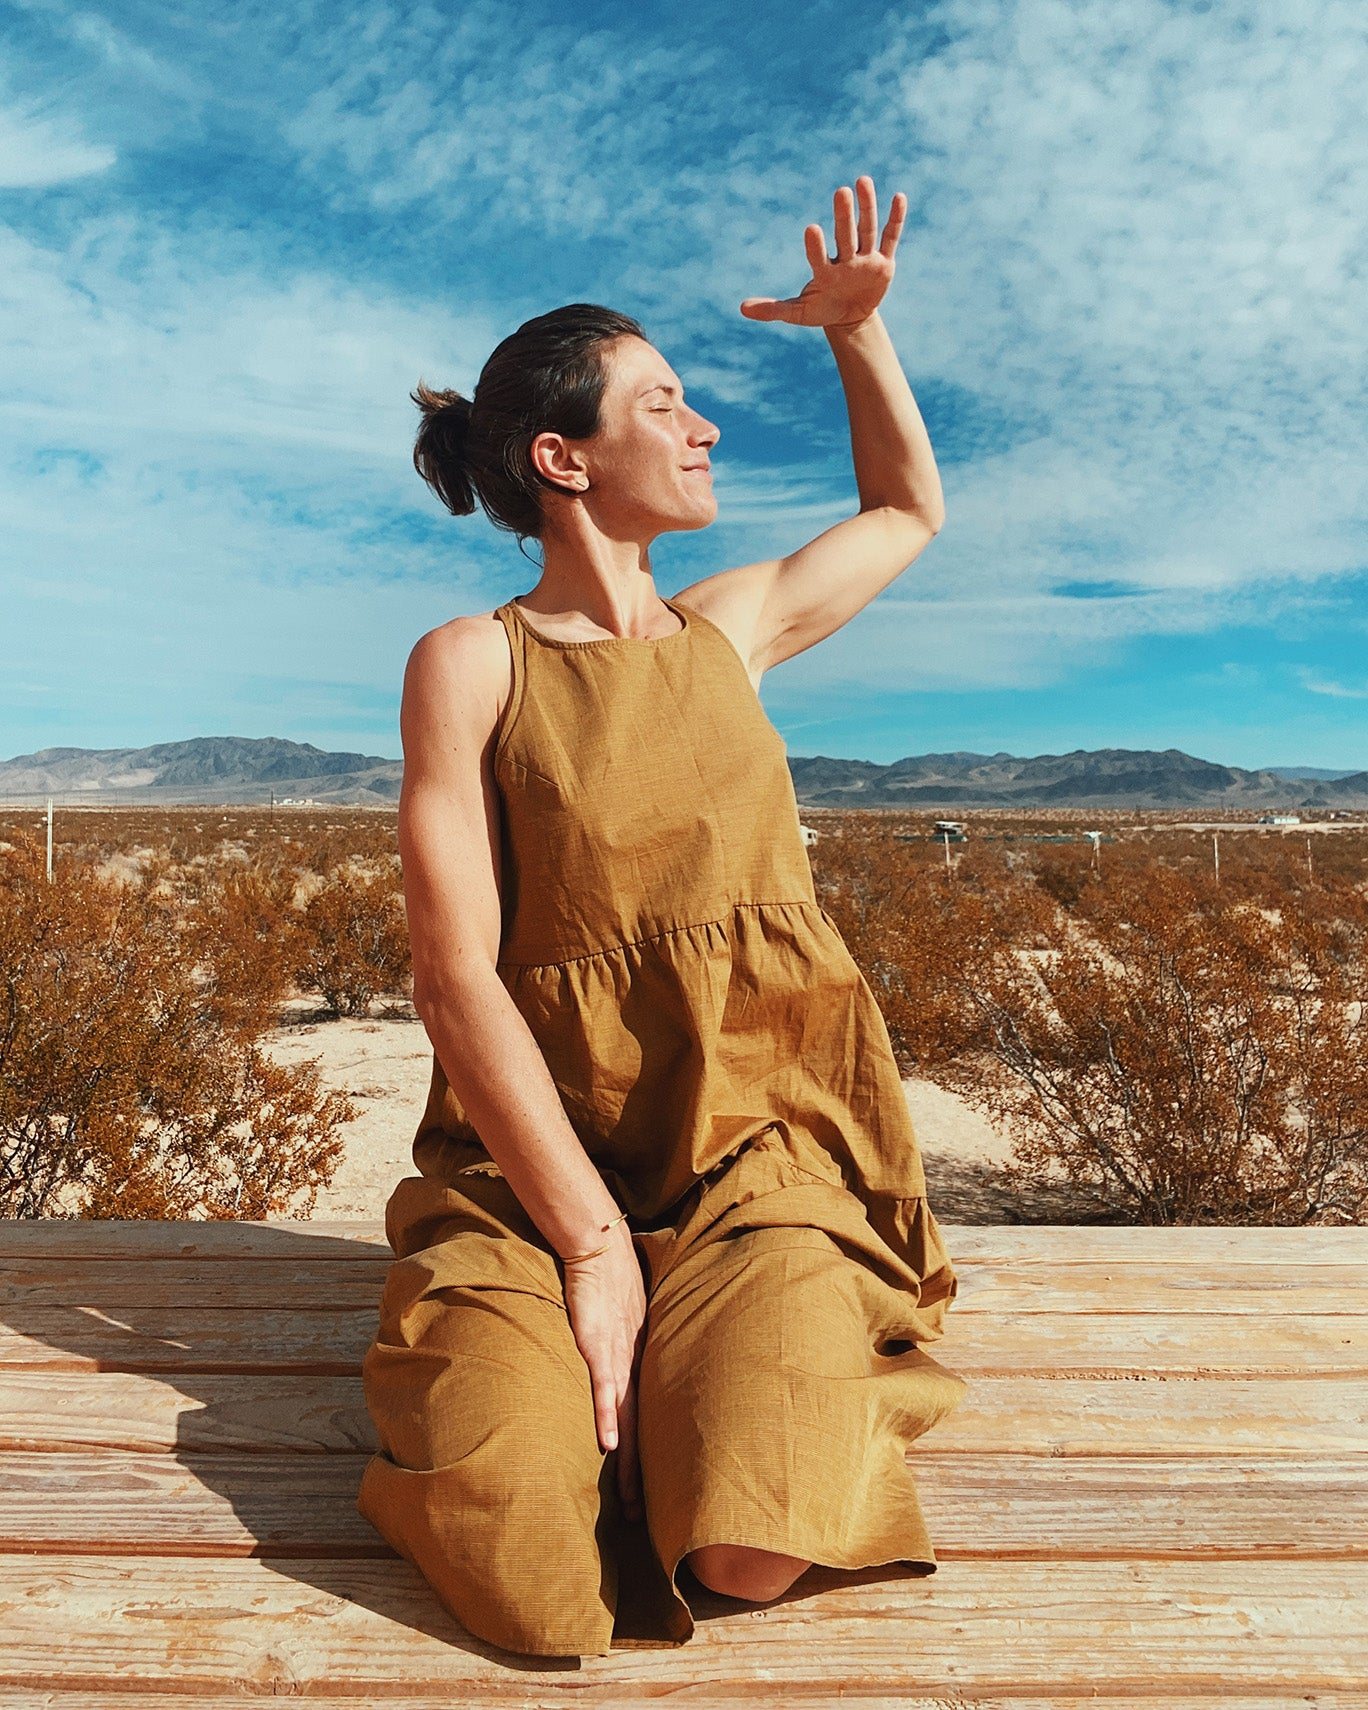 woman in mustard yellow long tiered dress sitting on wood deck in Joshua Tree with mountains and desert landscape in the background